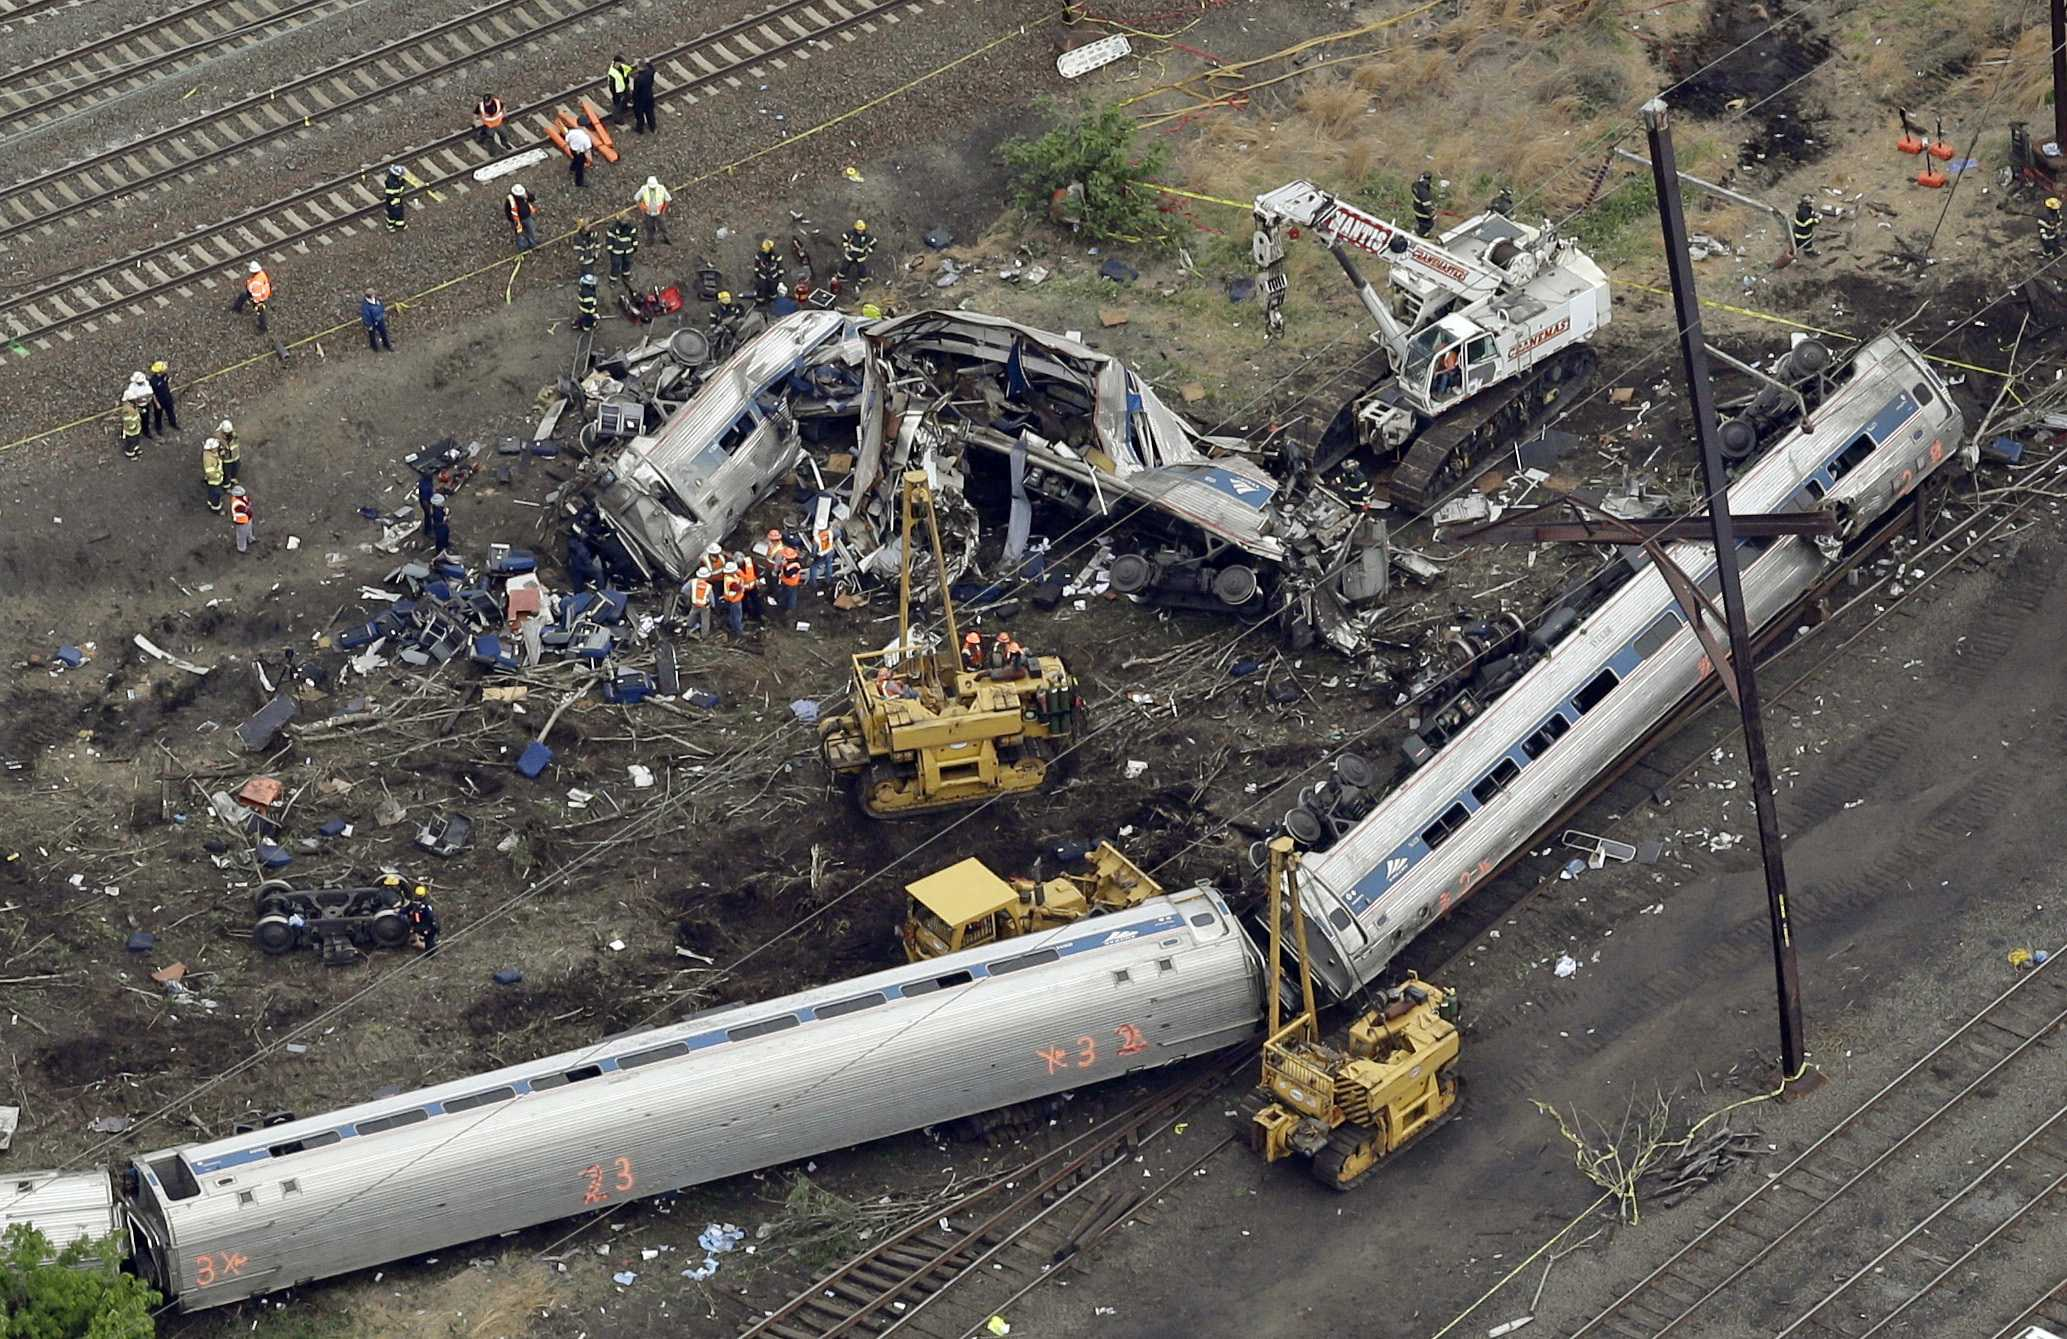 Engineer charged in deadly Amtrak crash